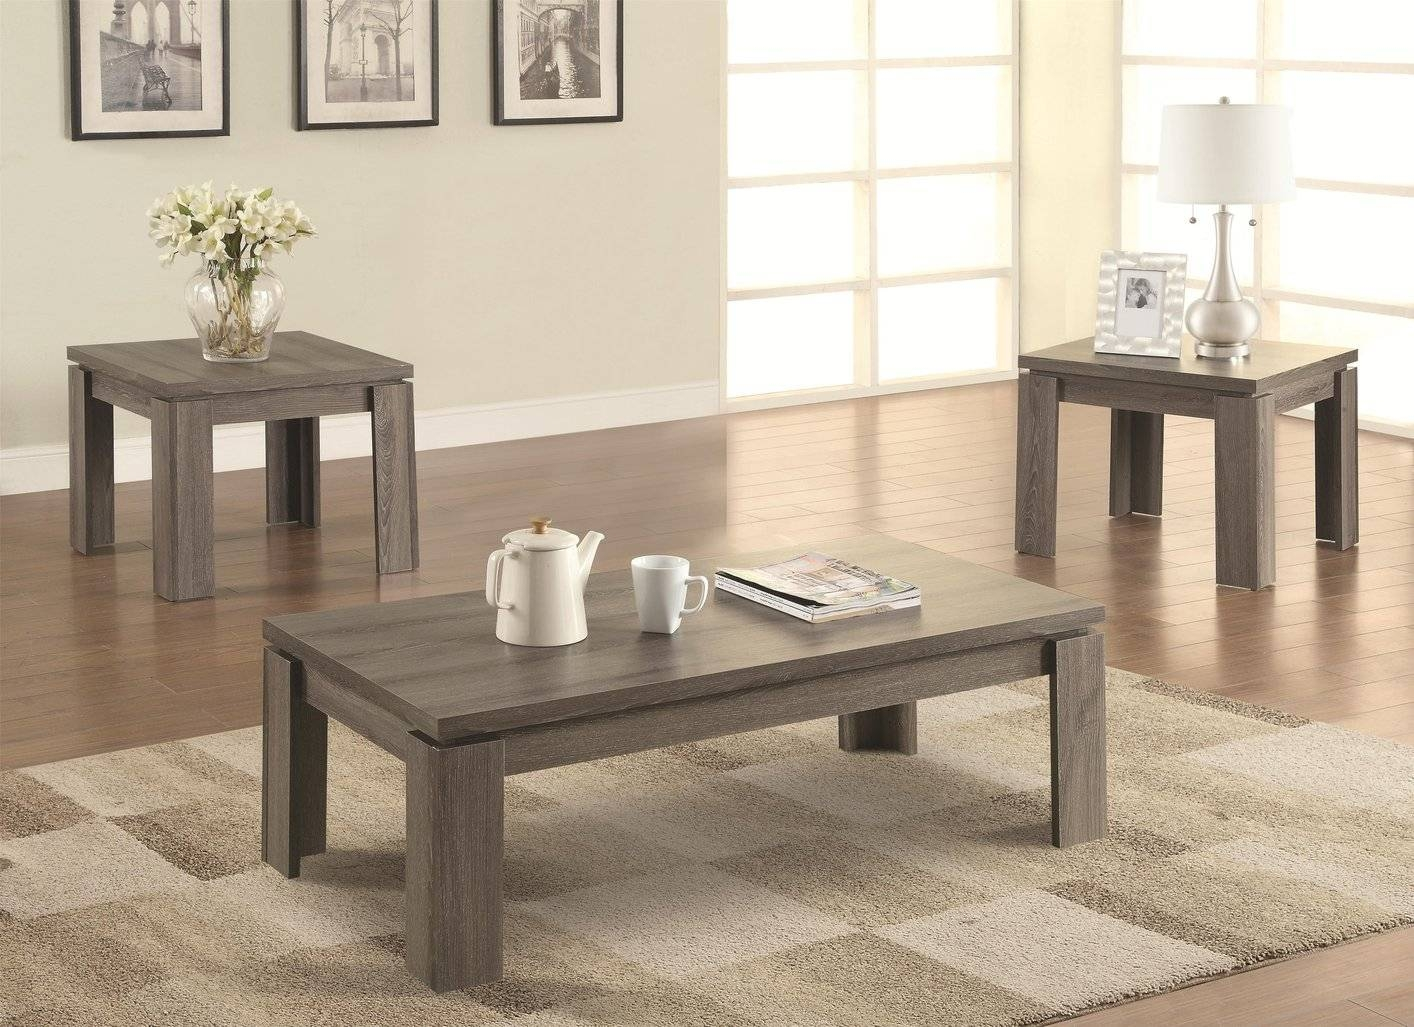 Wood Coffee Table Sets | Coffee Tables Decoration regarding Coffee Table With Matching End Tables (Image 30 of 30)